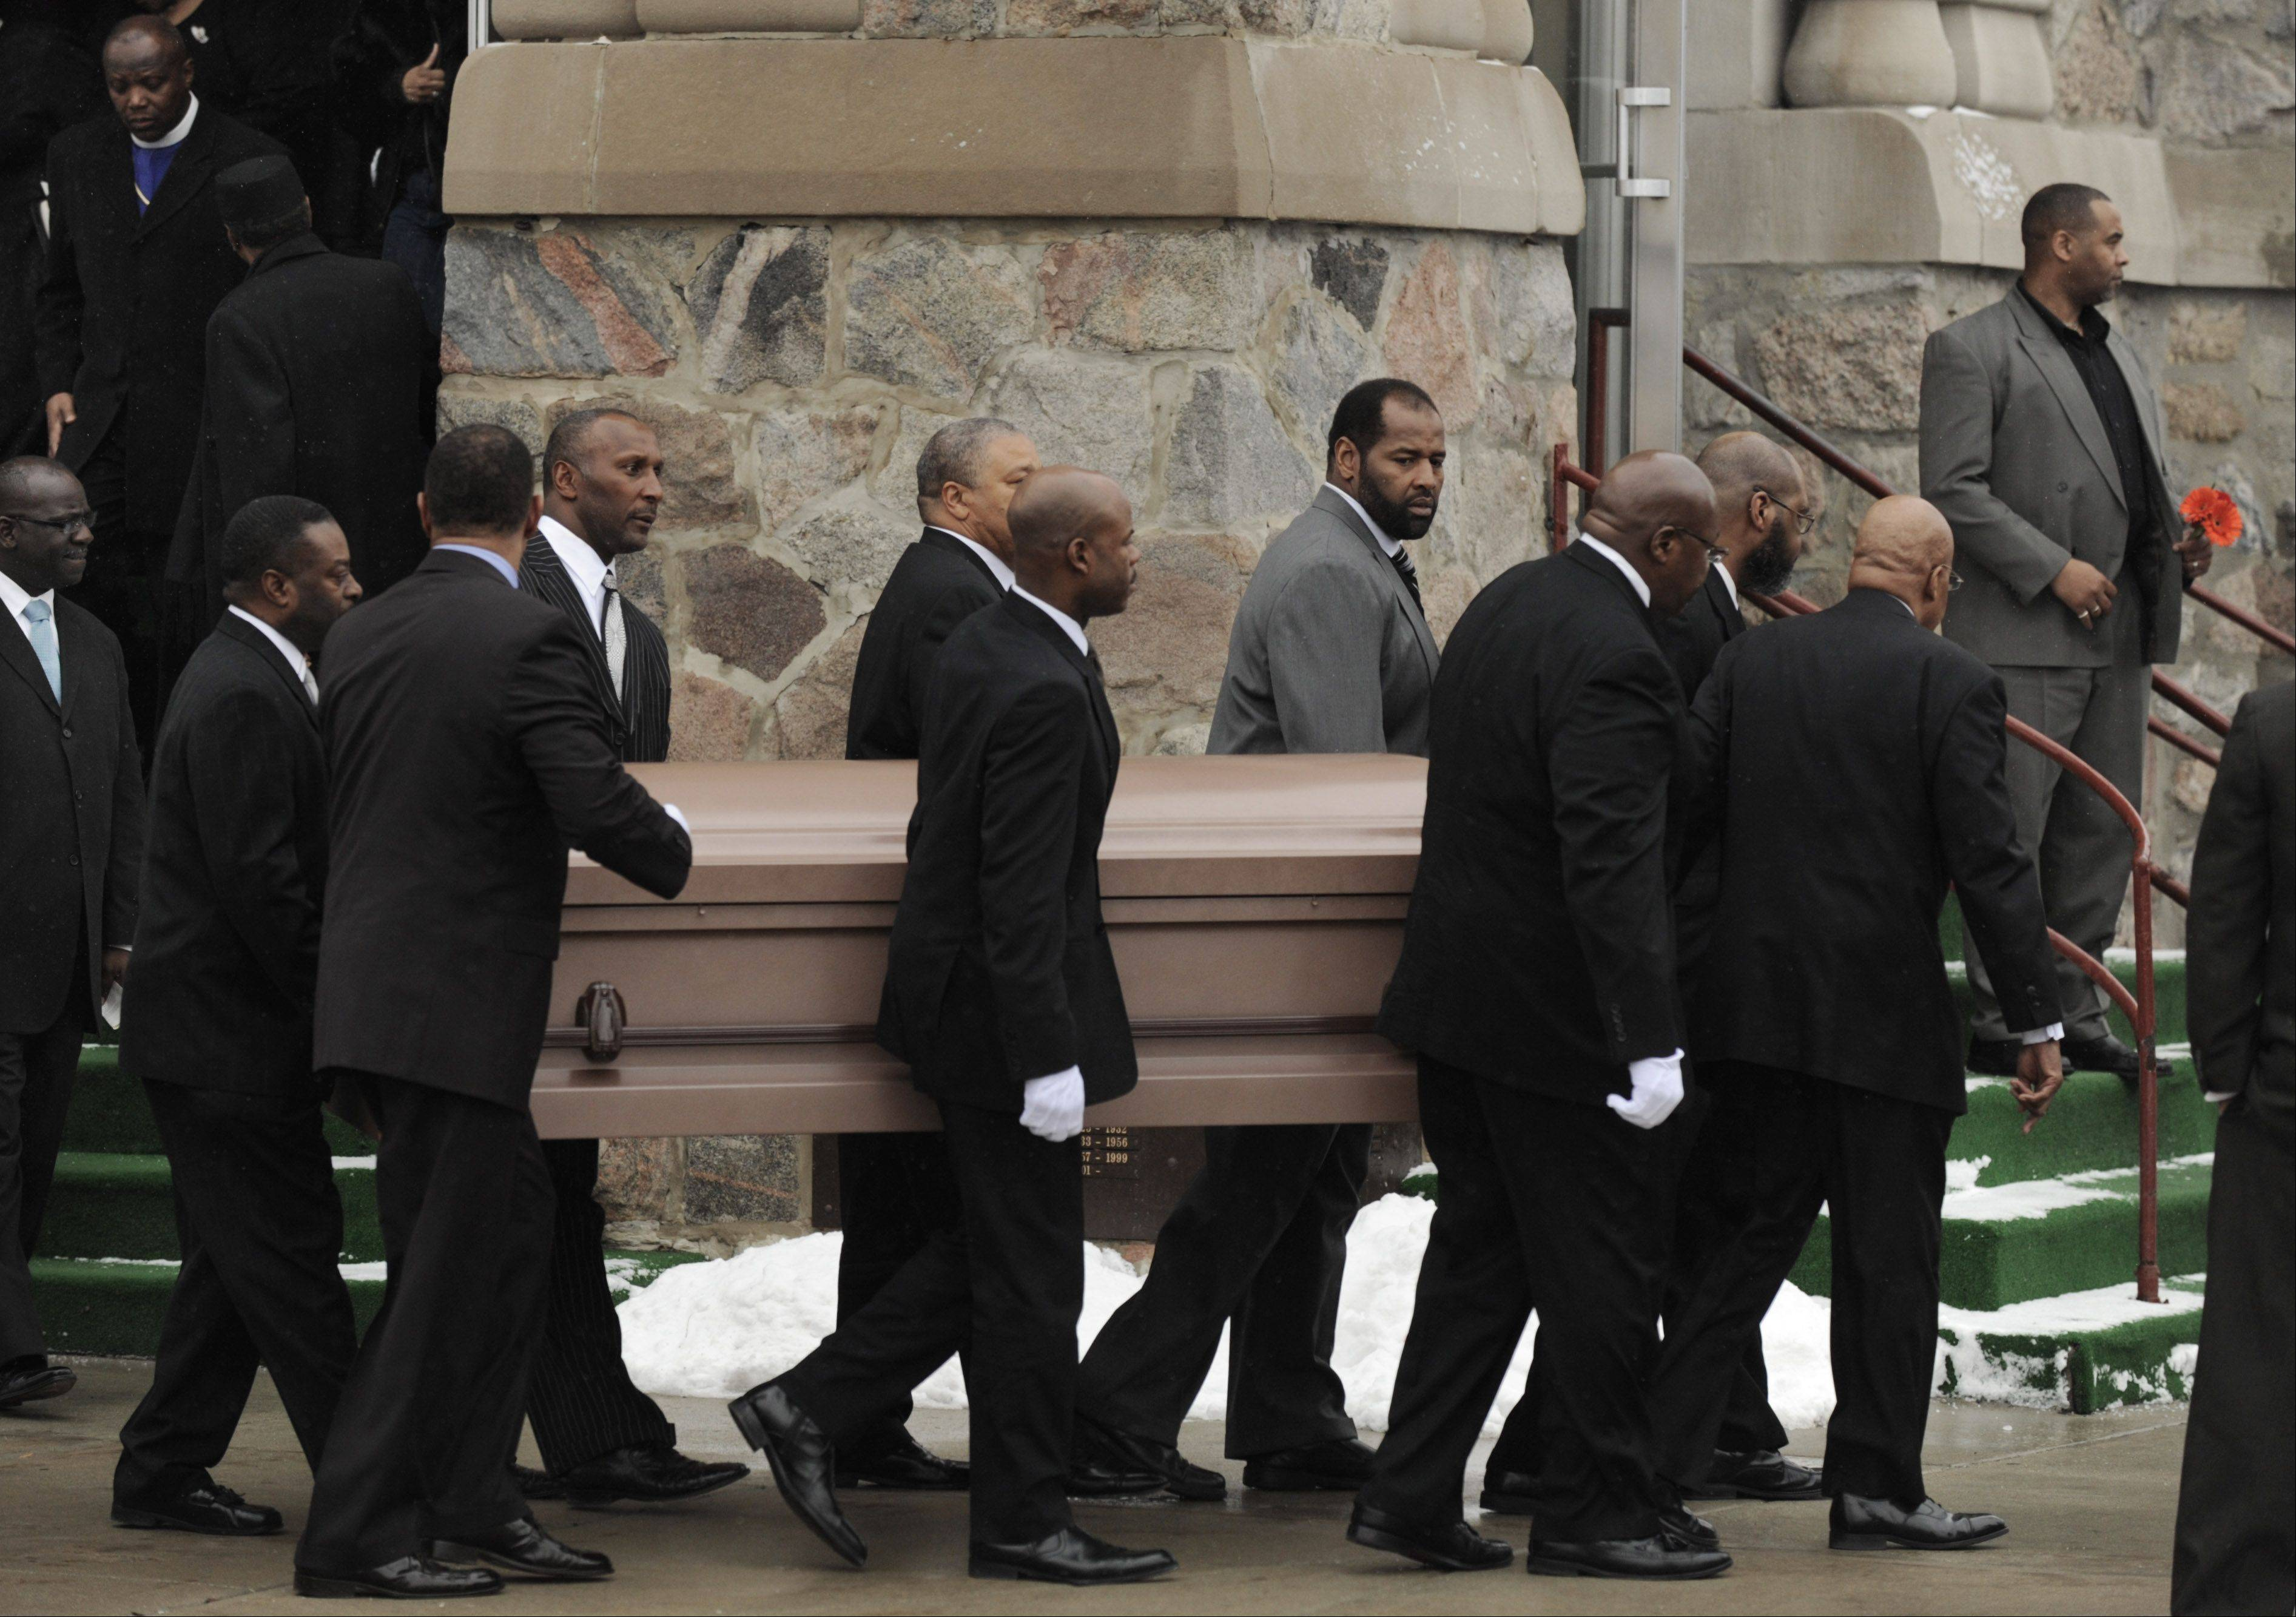 A host of Chicago Bears teammates serve as pallbearers for the body of Dave Duerson in 2011. His remains were cremated and now rest in a mausoleum on the University of Notre Dame campus.